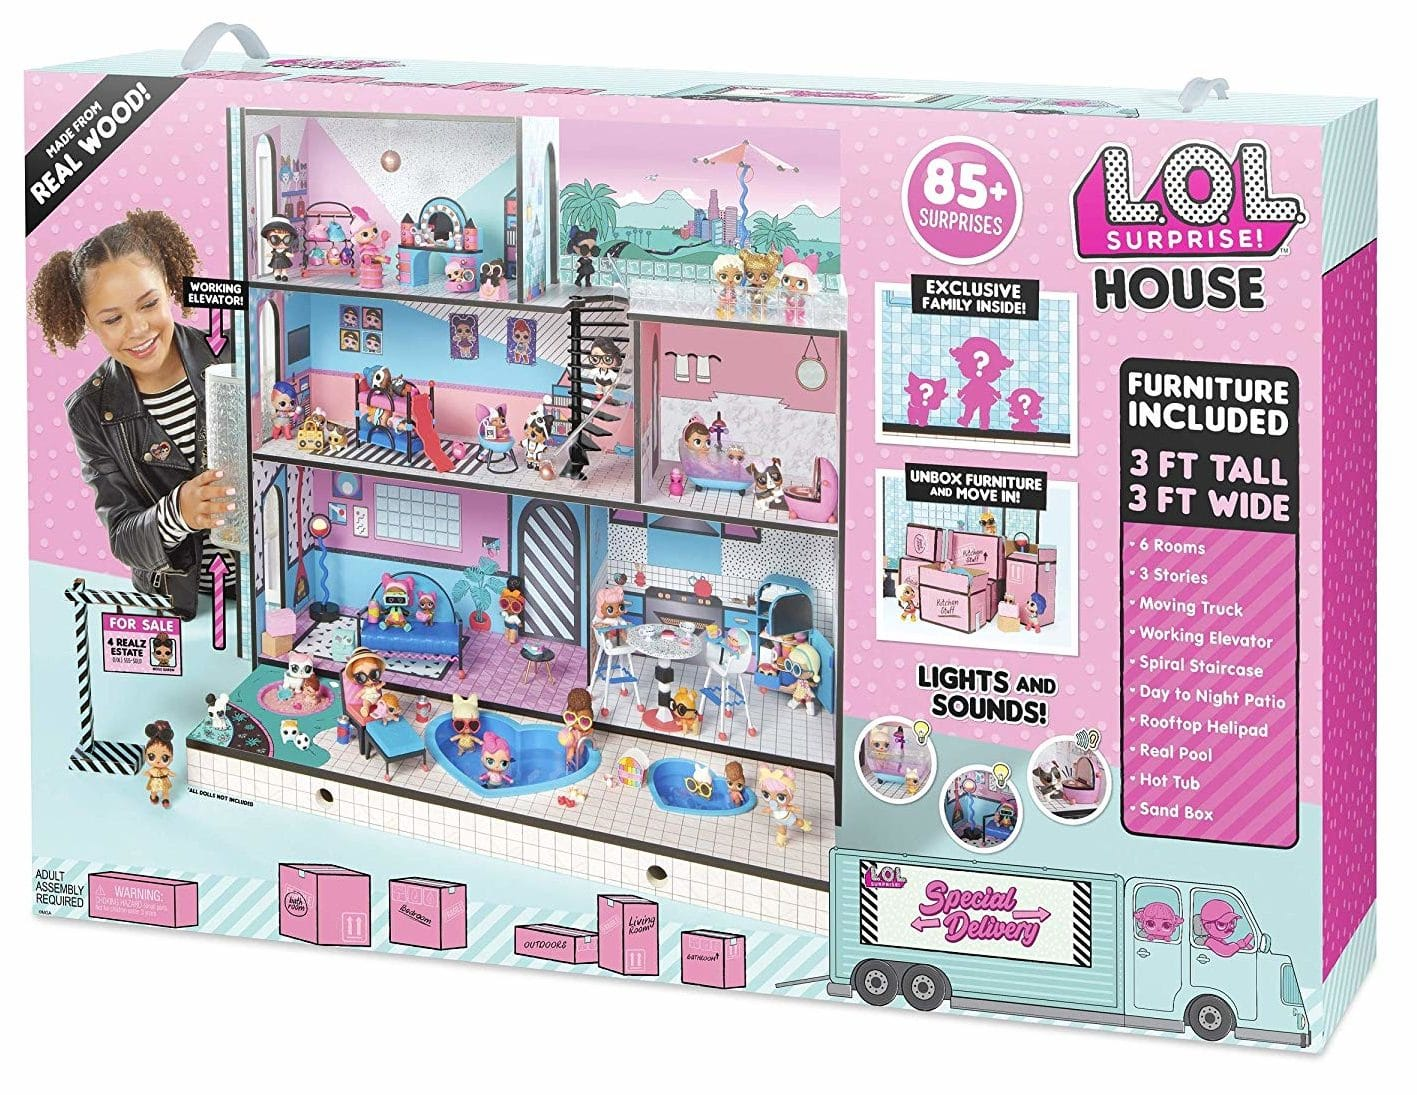 Where to Buy the L.O.L Surprise Doll House 2018